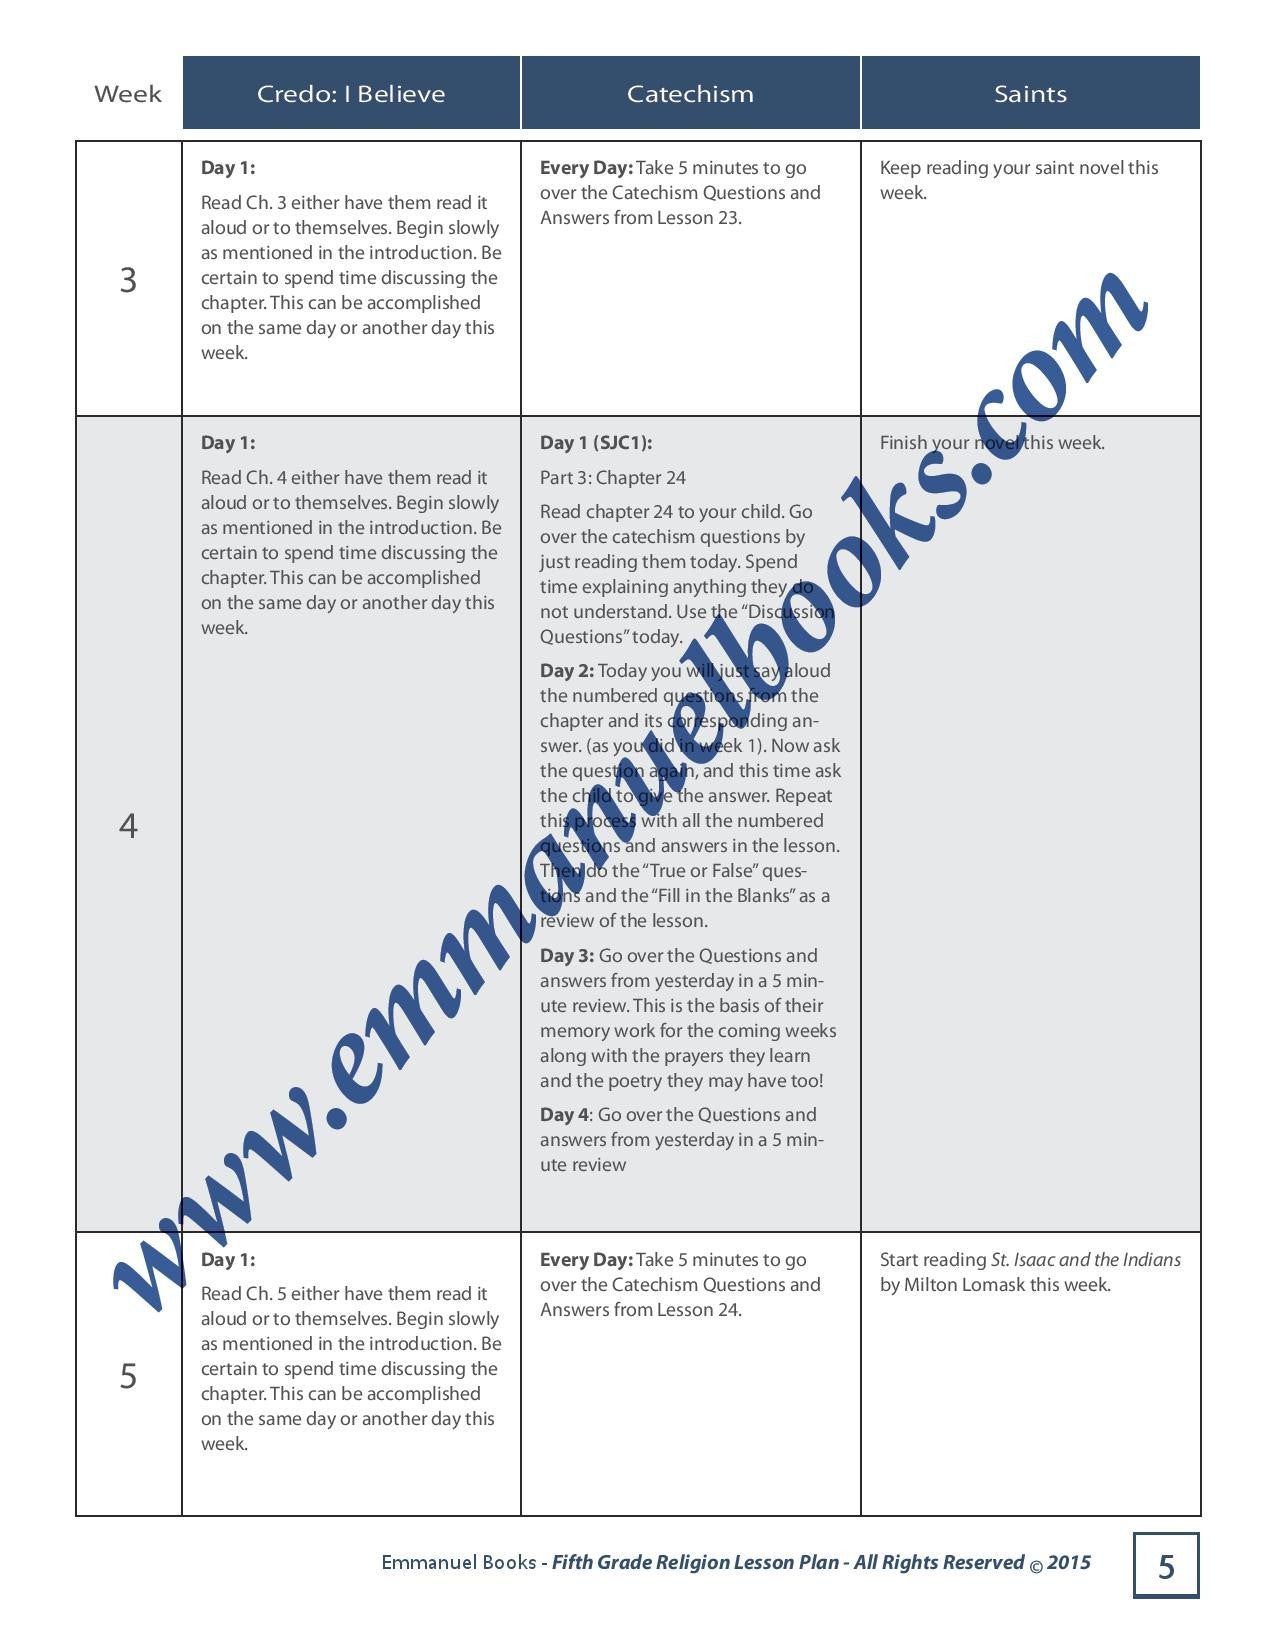 Emmanuel Books Fifth Grade Religion Lesson Plan